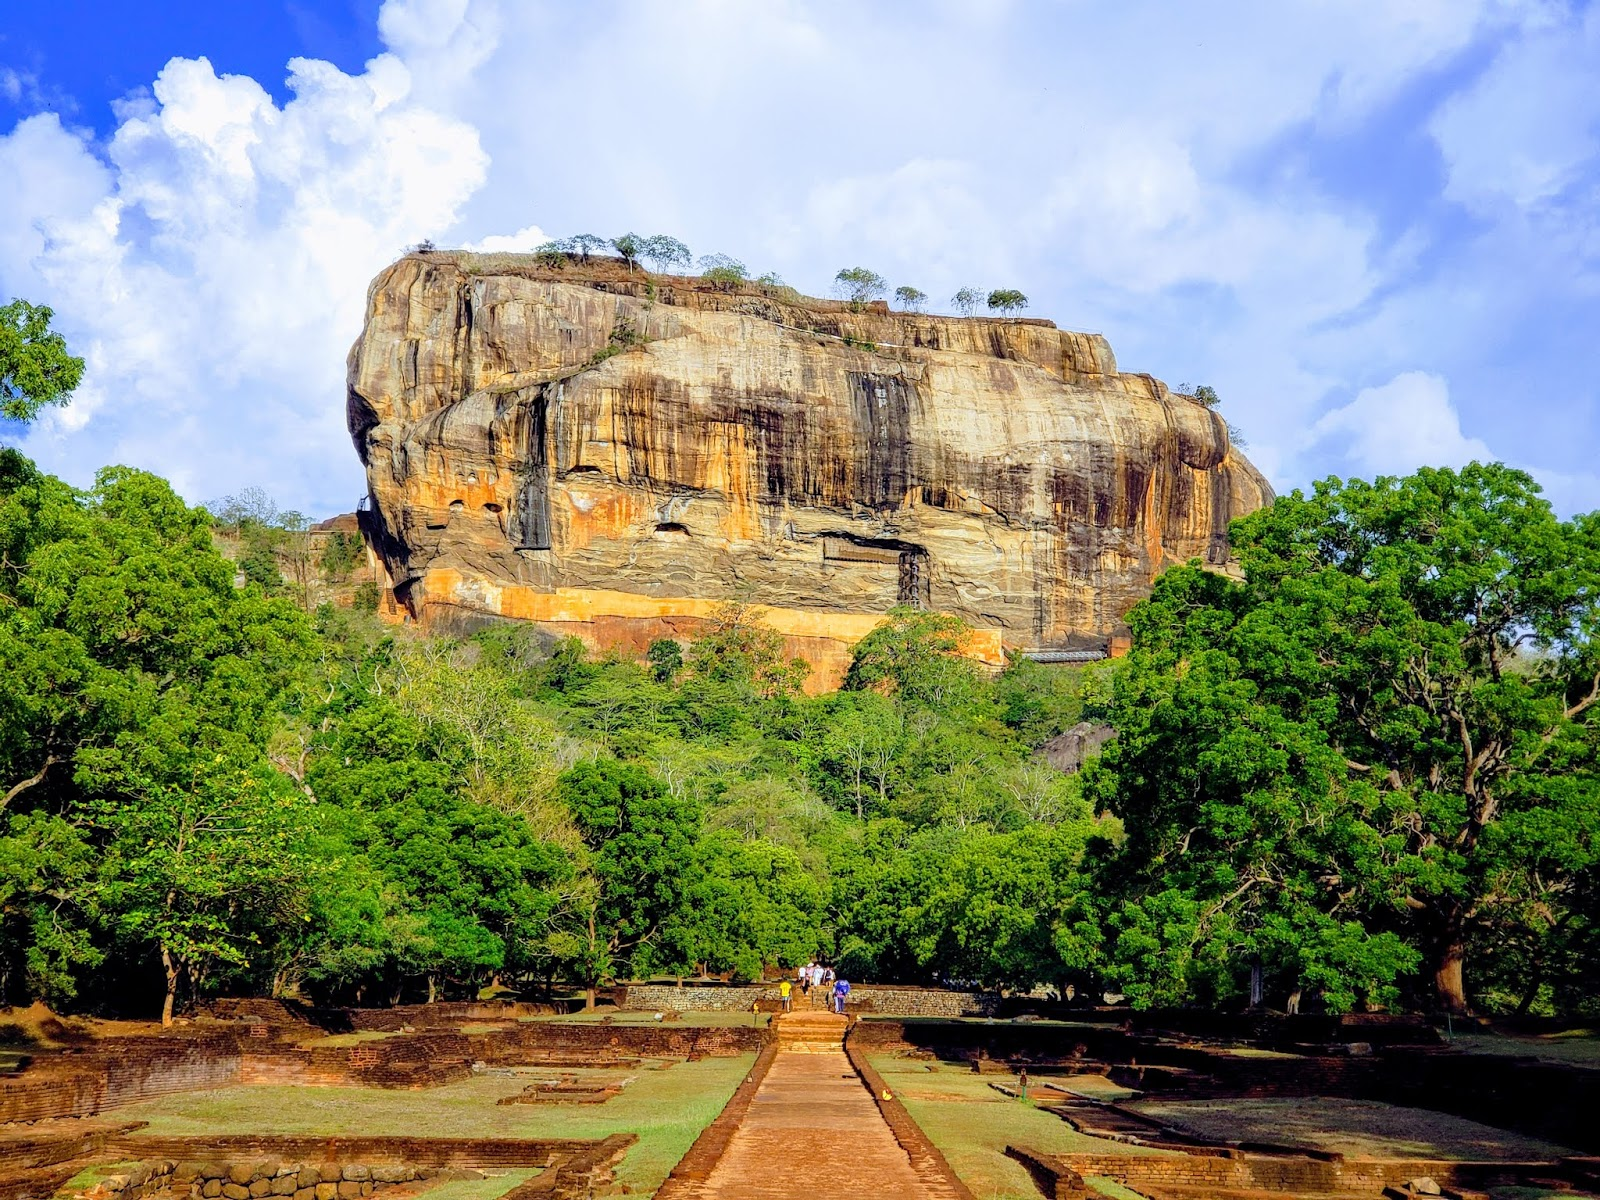 200 meters high Sigiriya Rock, Sri Lanka